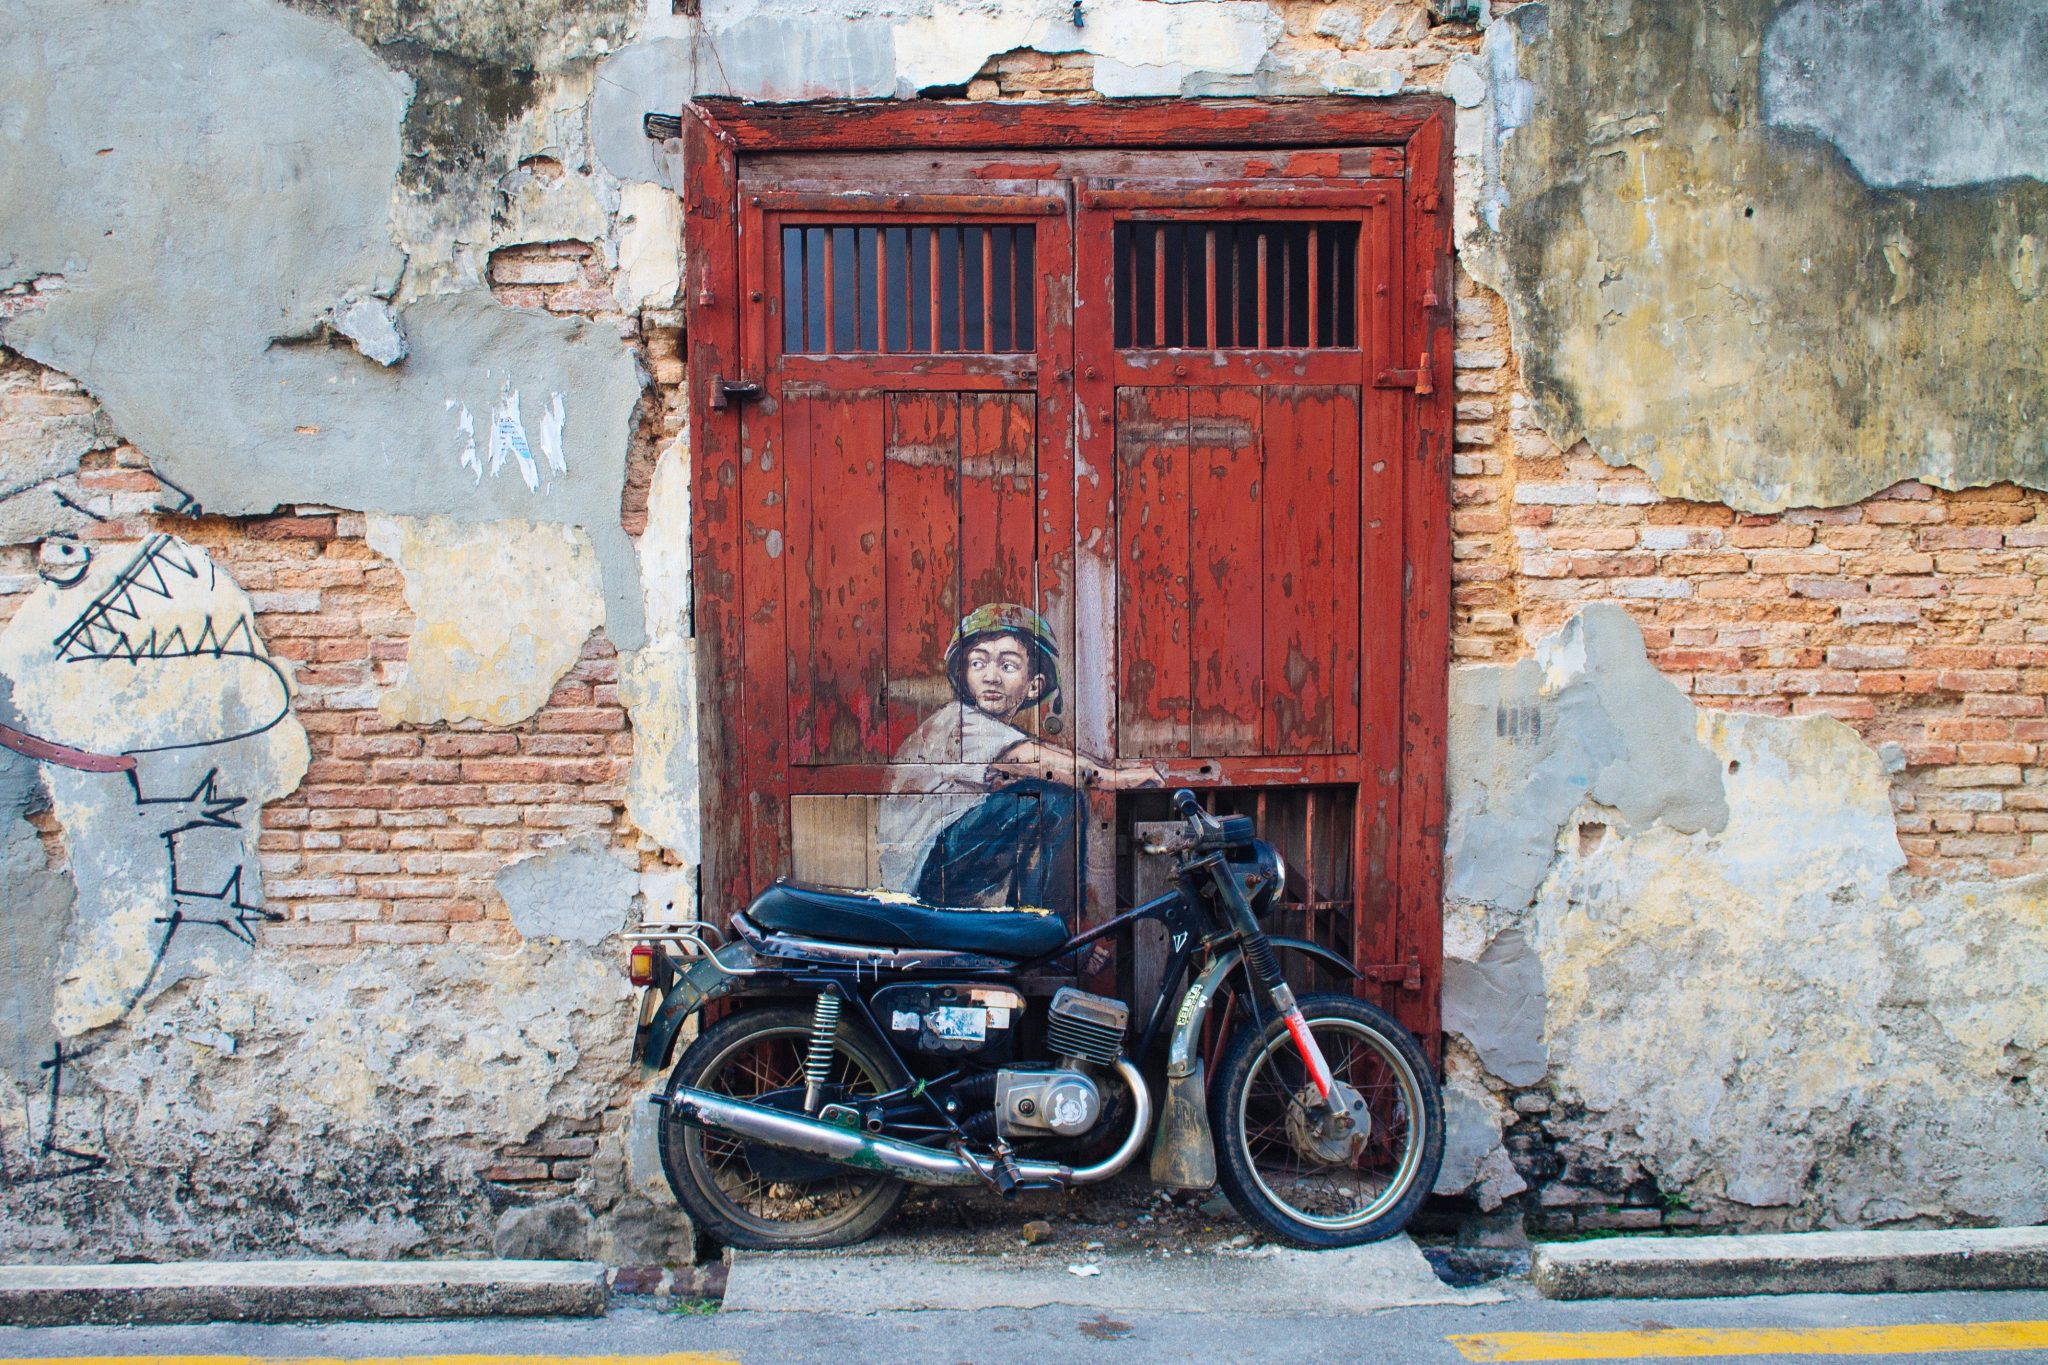 Street art in George Town, Penang, Malaysia | Asia Travel